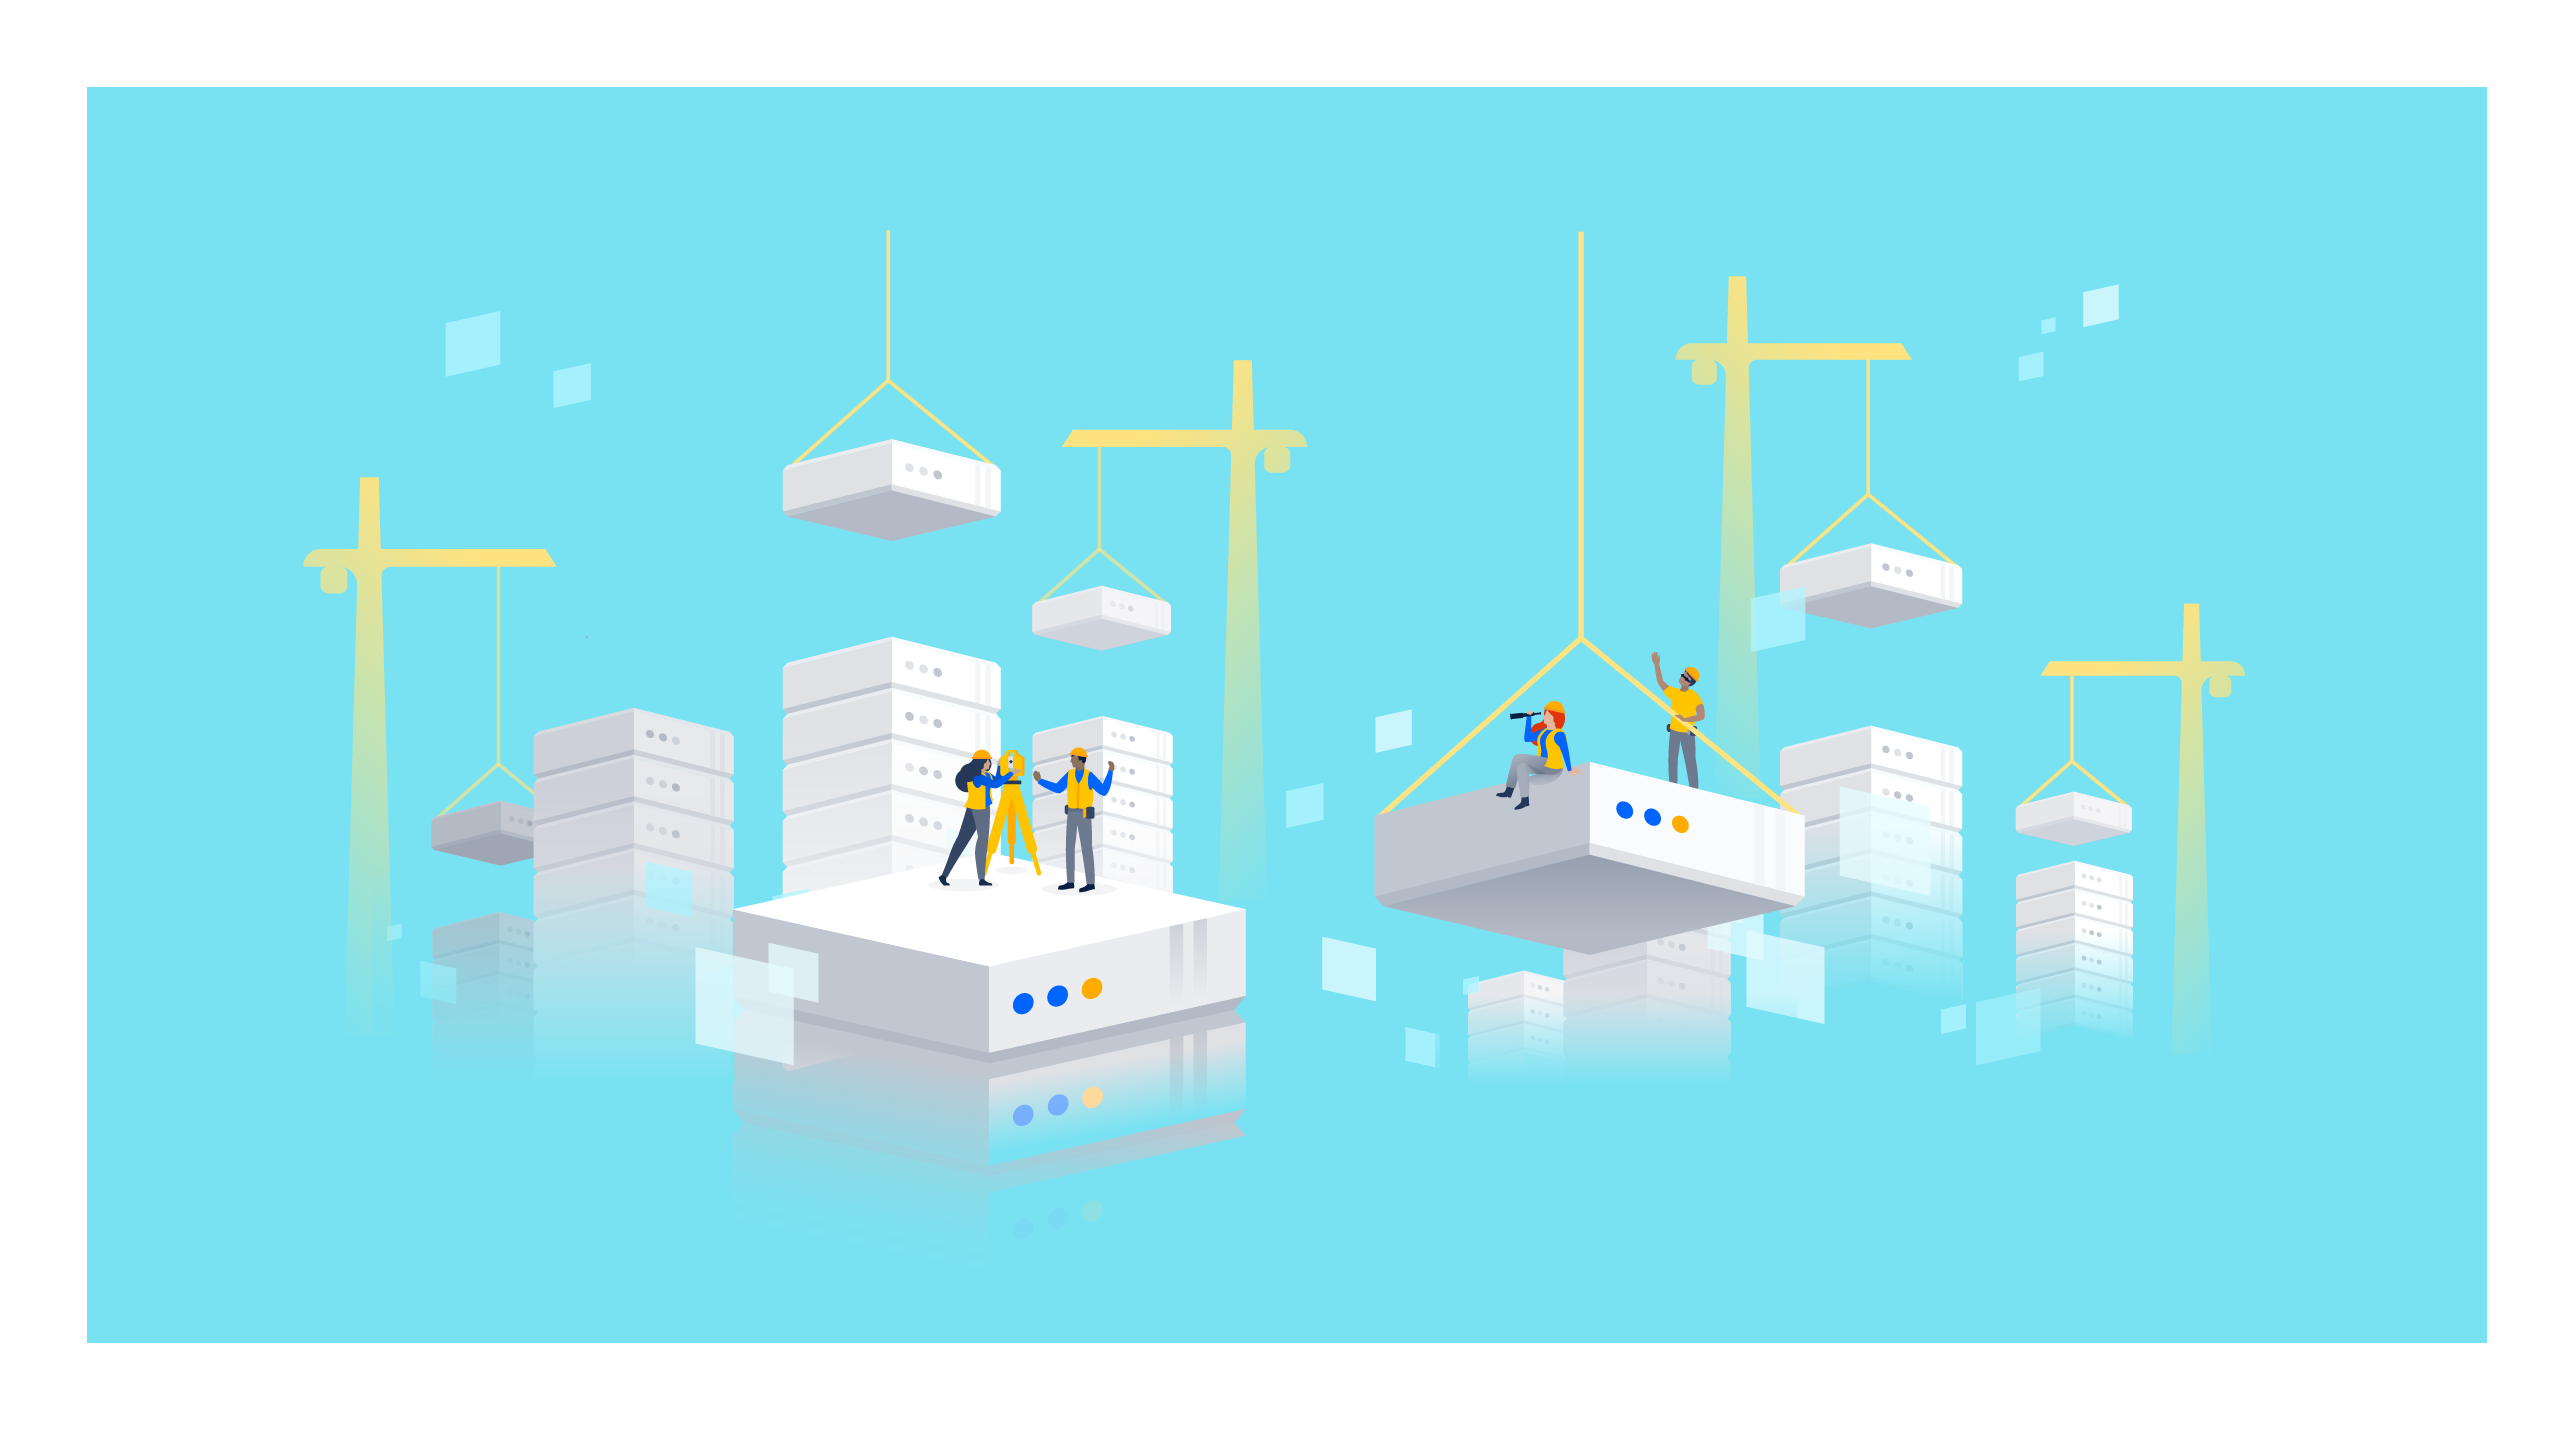 Construction site with jira server blocks illustration